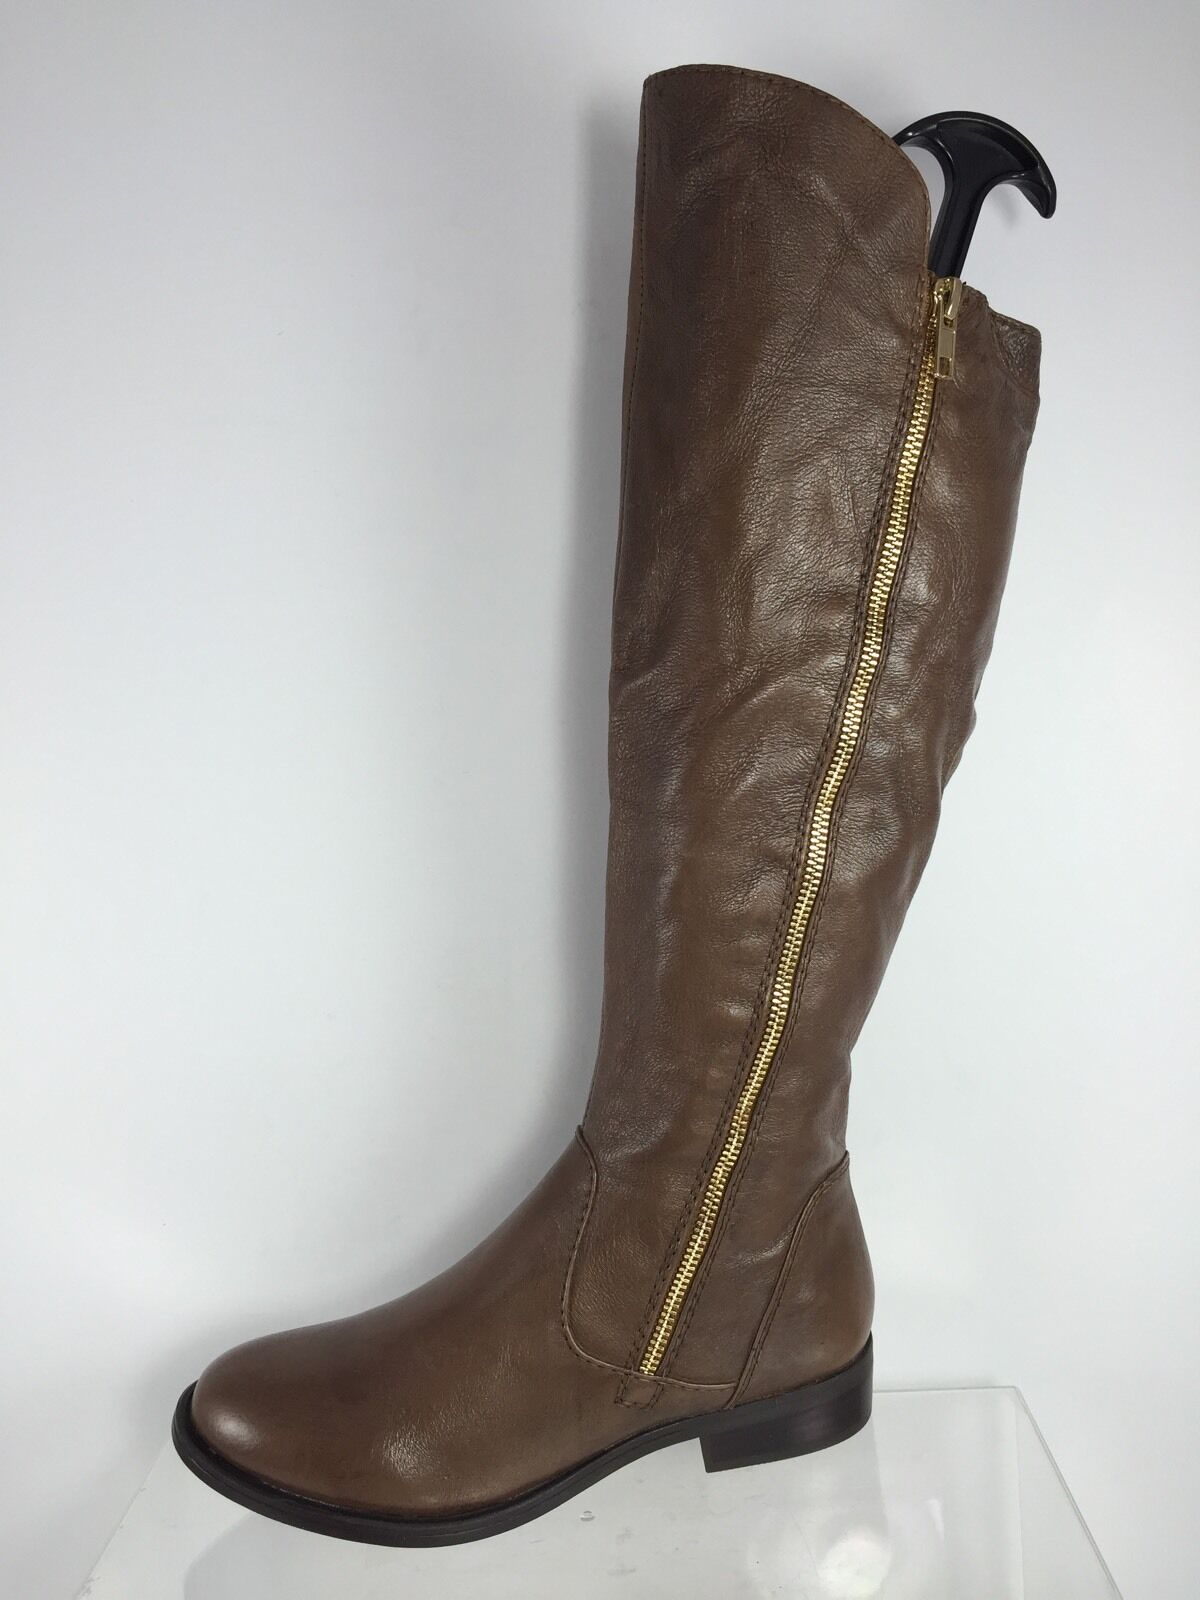 Steve Madden Womens Brown Leather Knee Boots 7.5 M